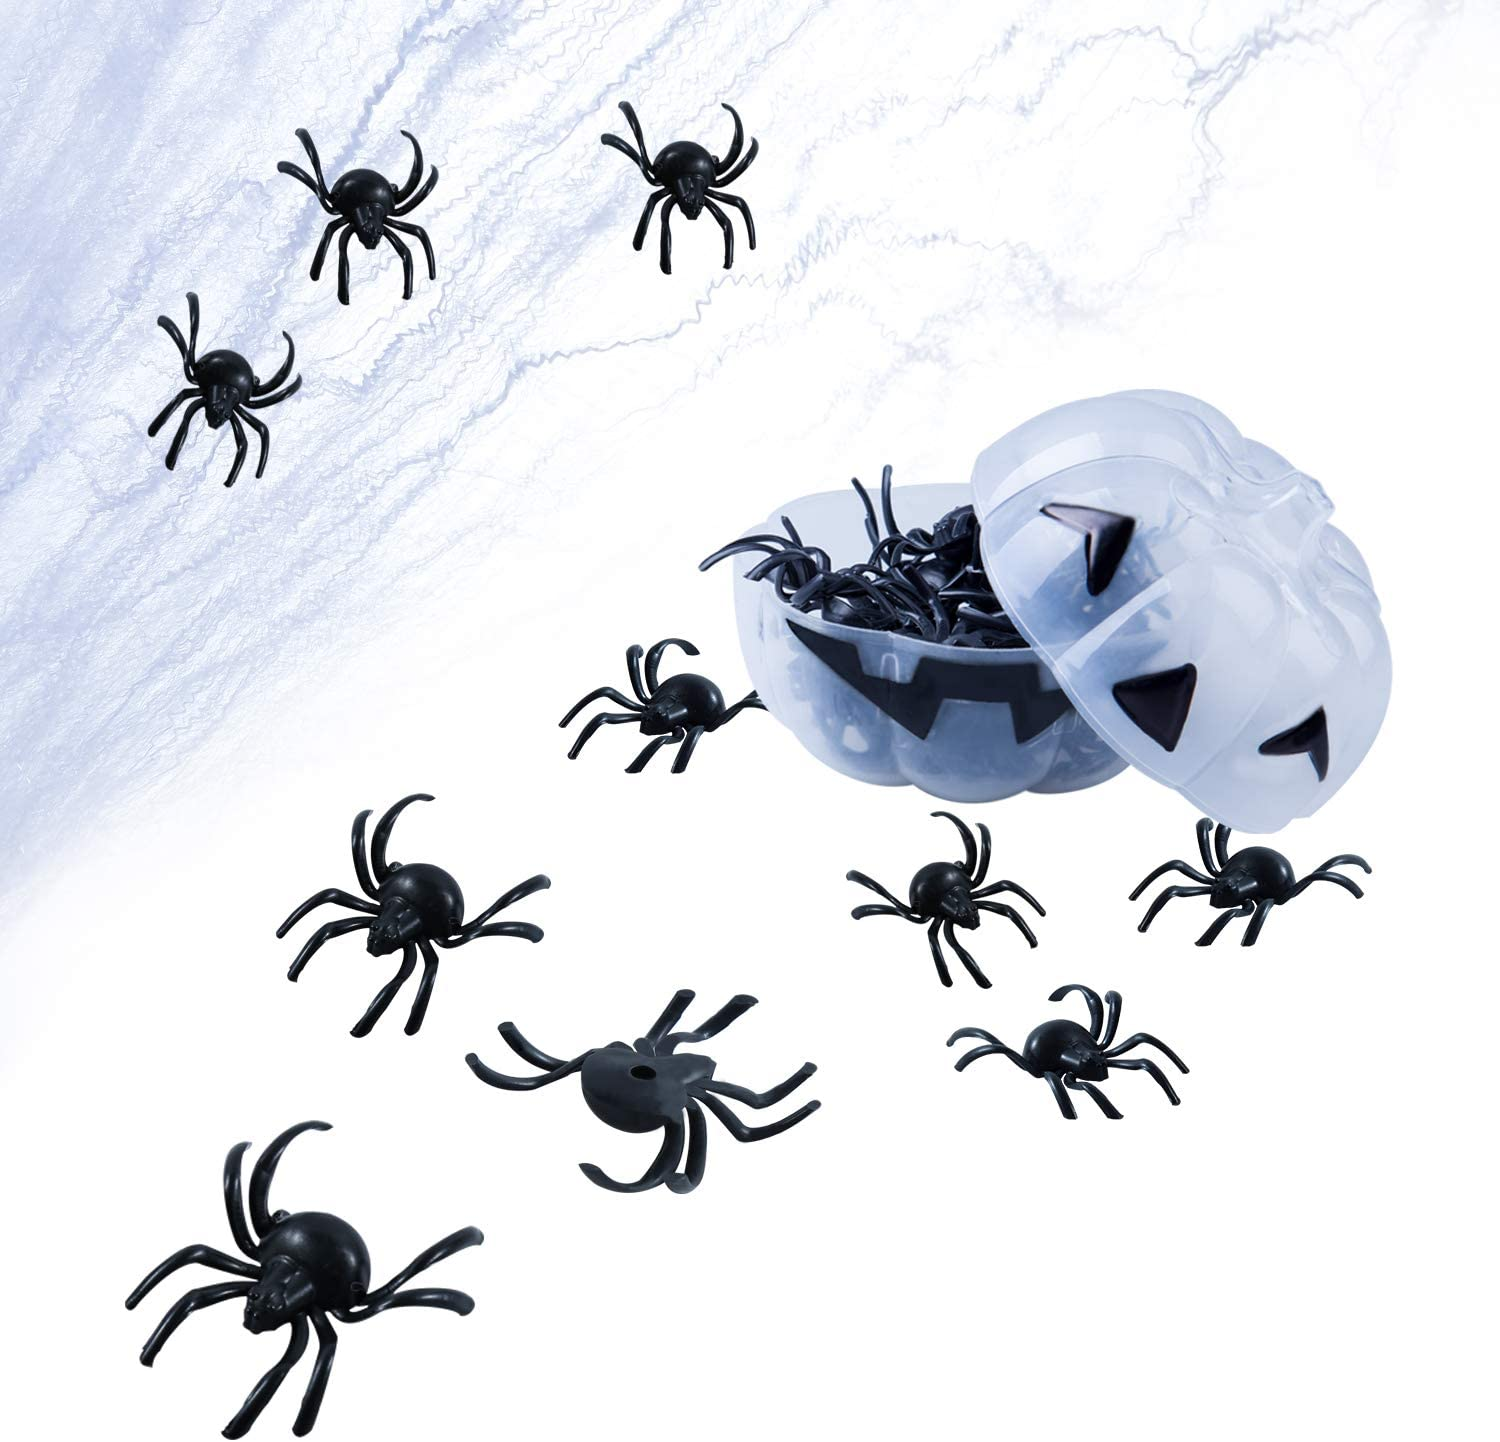 YUNGCHI 60 Halloween Plastic Spiders, Halloween Fake Spiders, Nightmare Before Christmas Halloween Decorations, Pumpkin Box,Set of 60